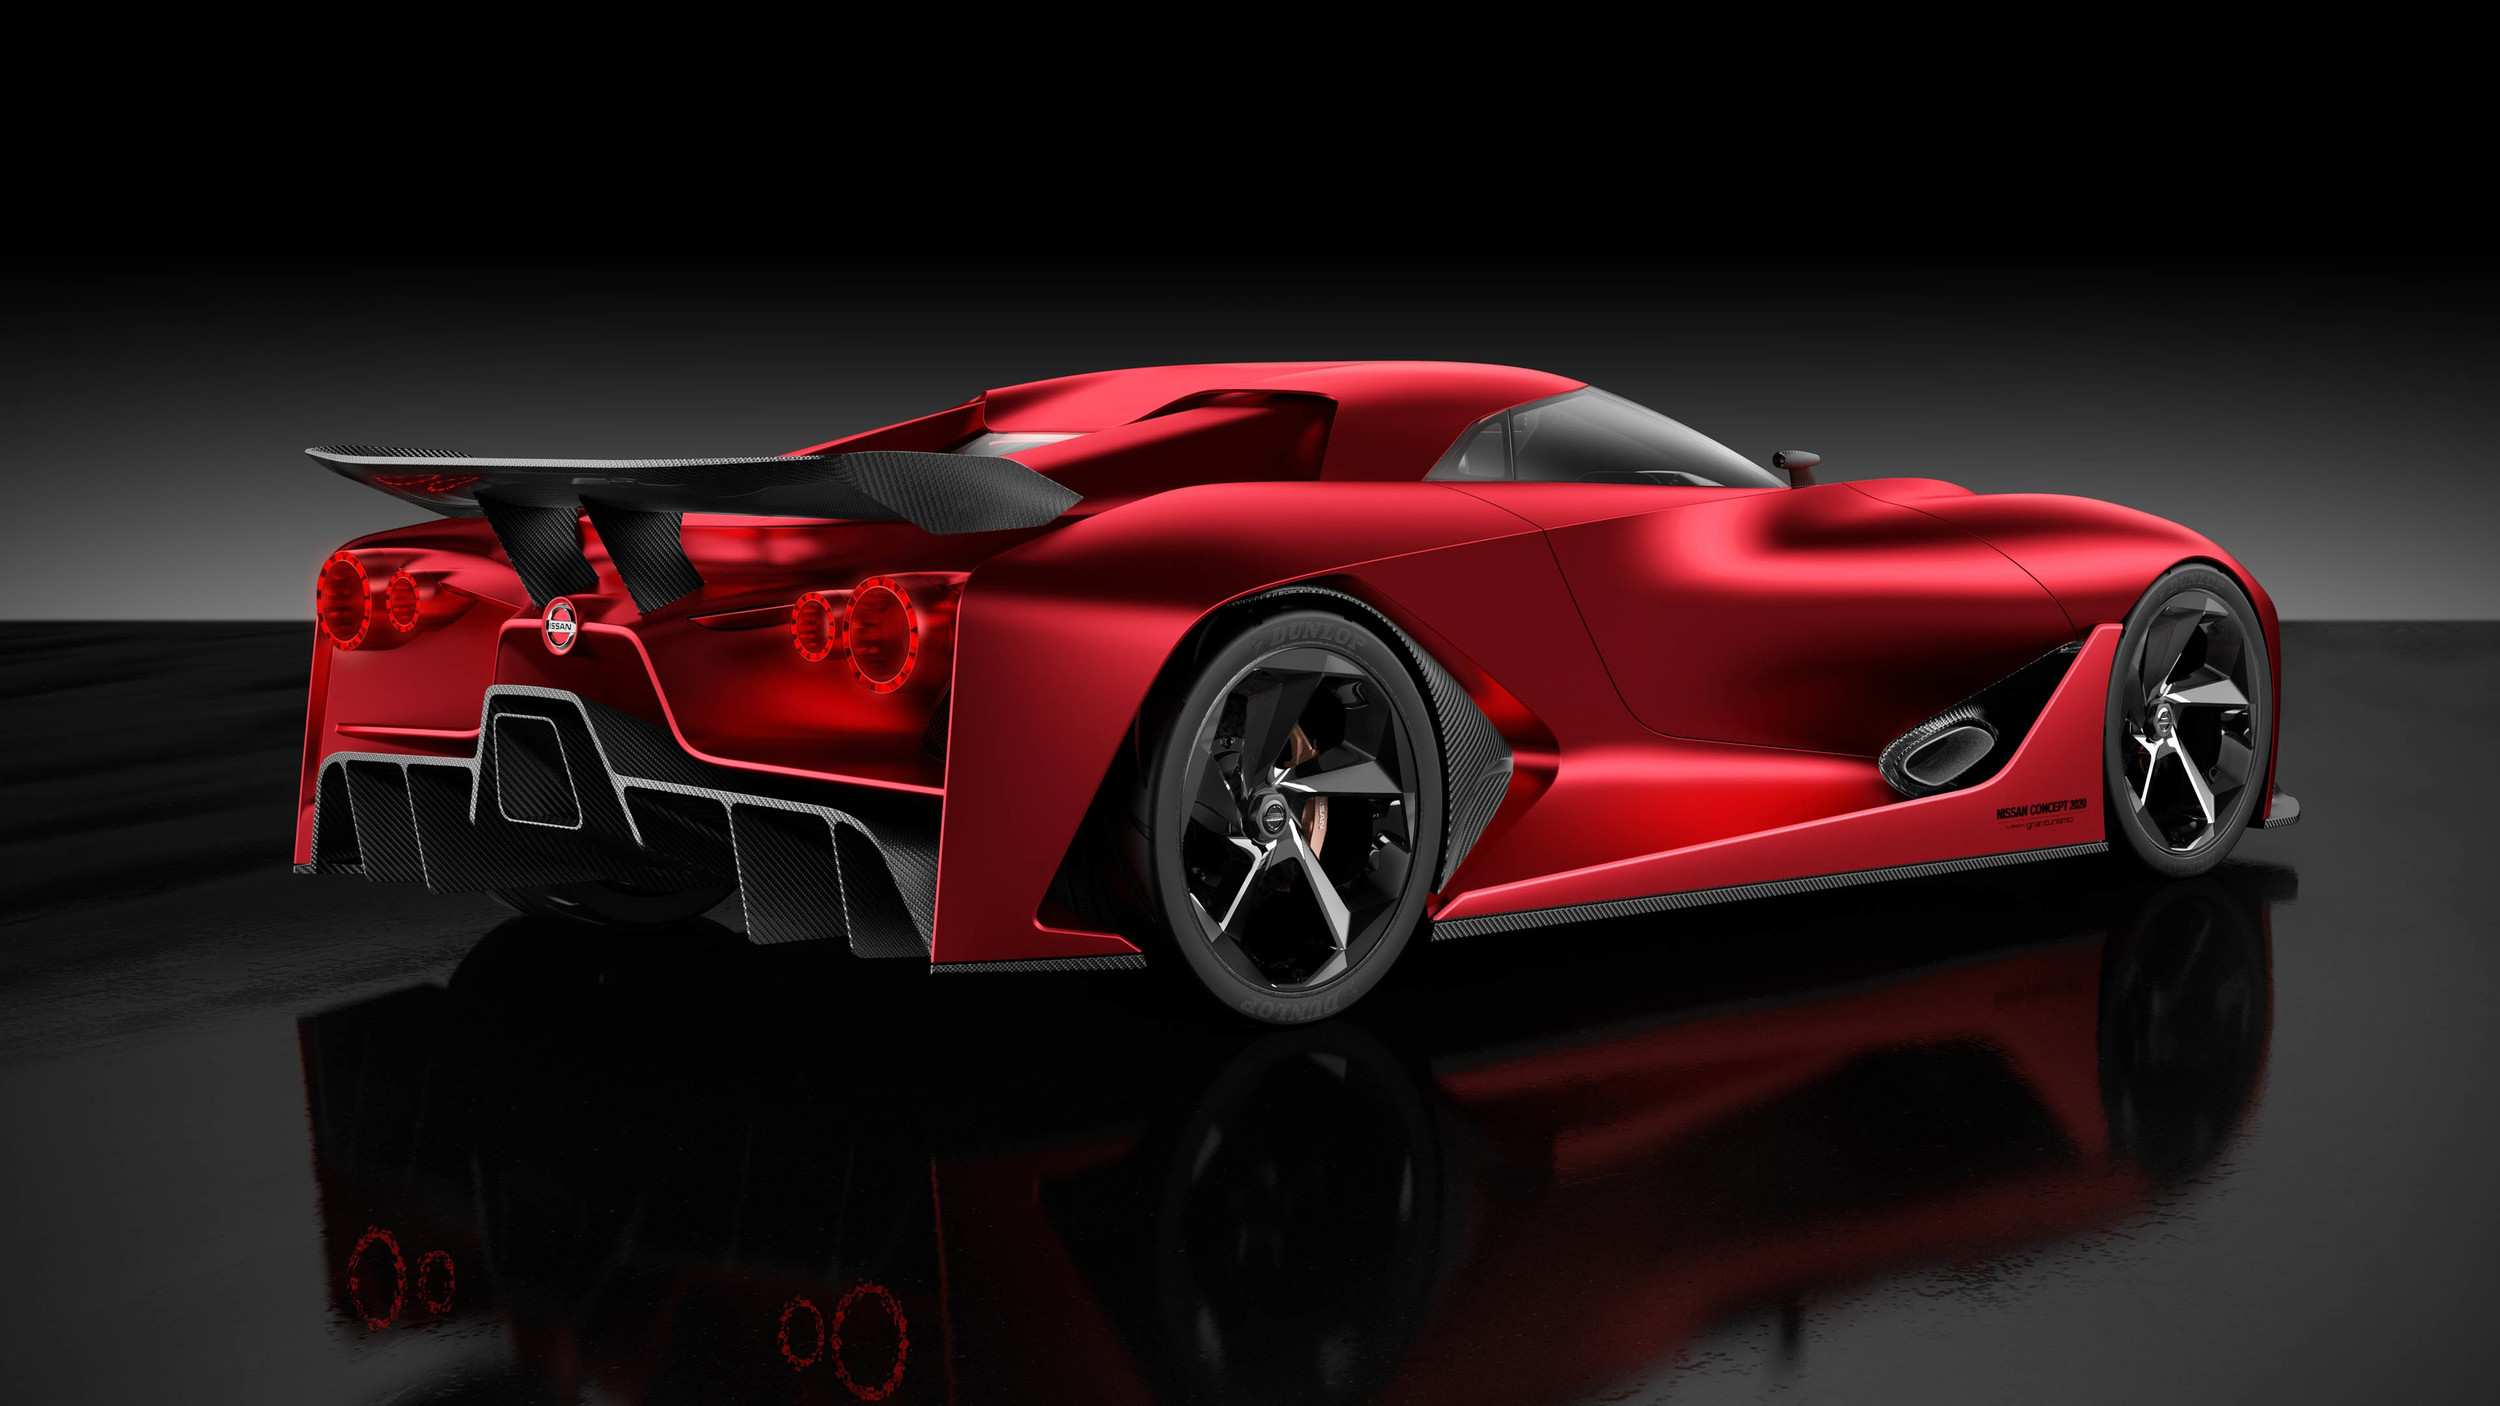 87 All New Nissan Concept 2020 Price Price Design And Review